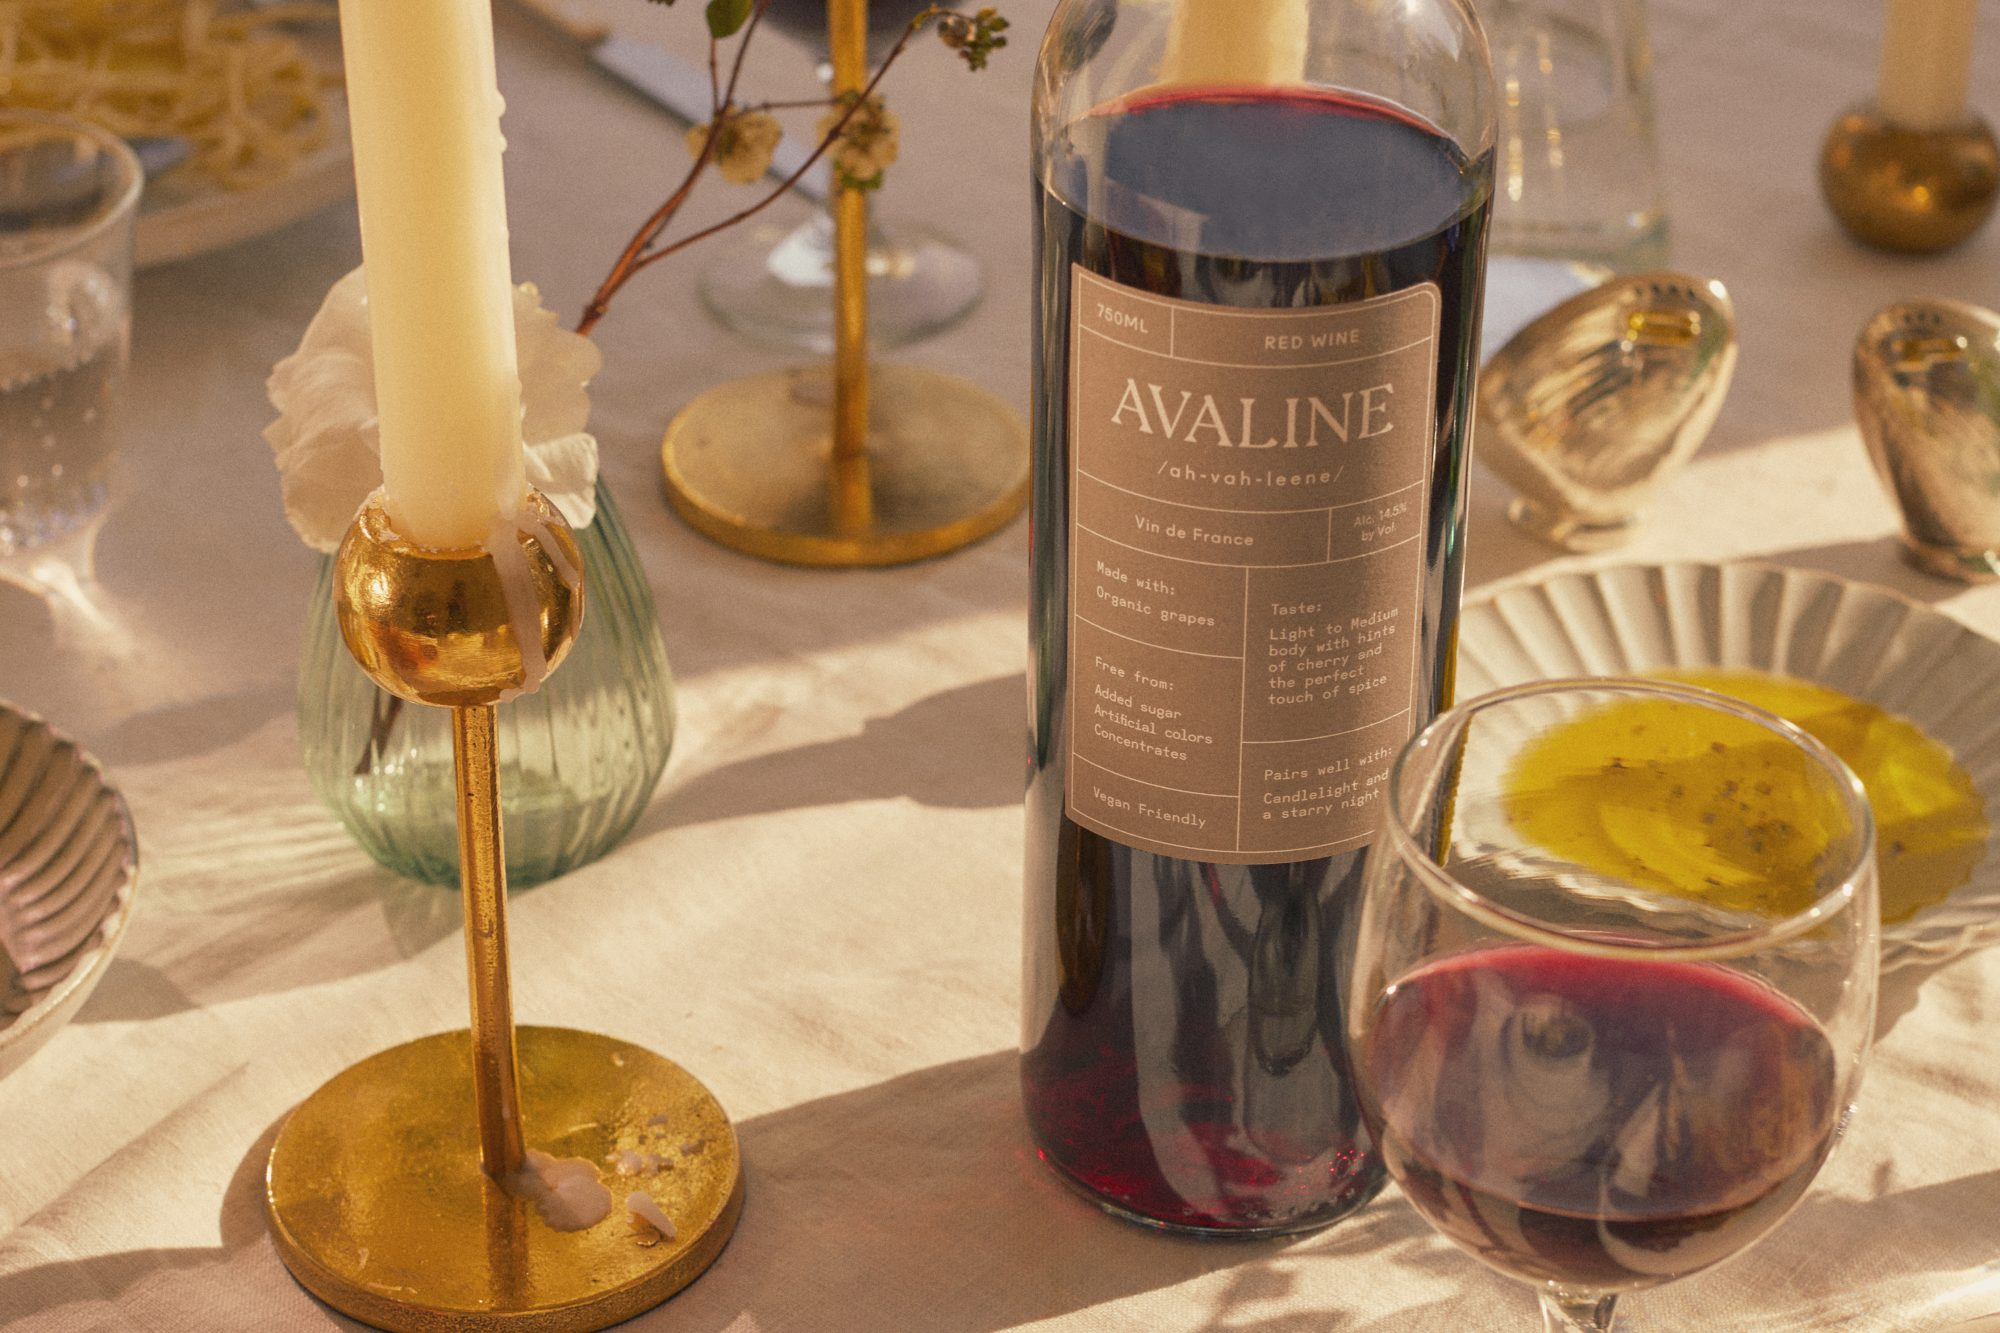 wine-gifts-avaline-red